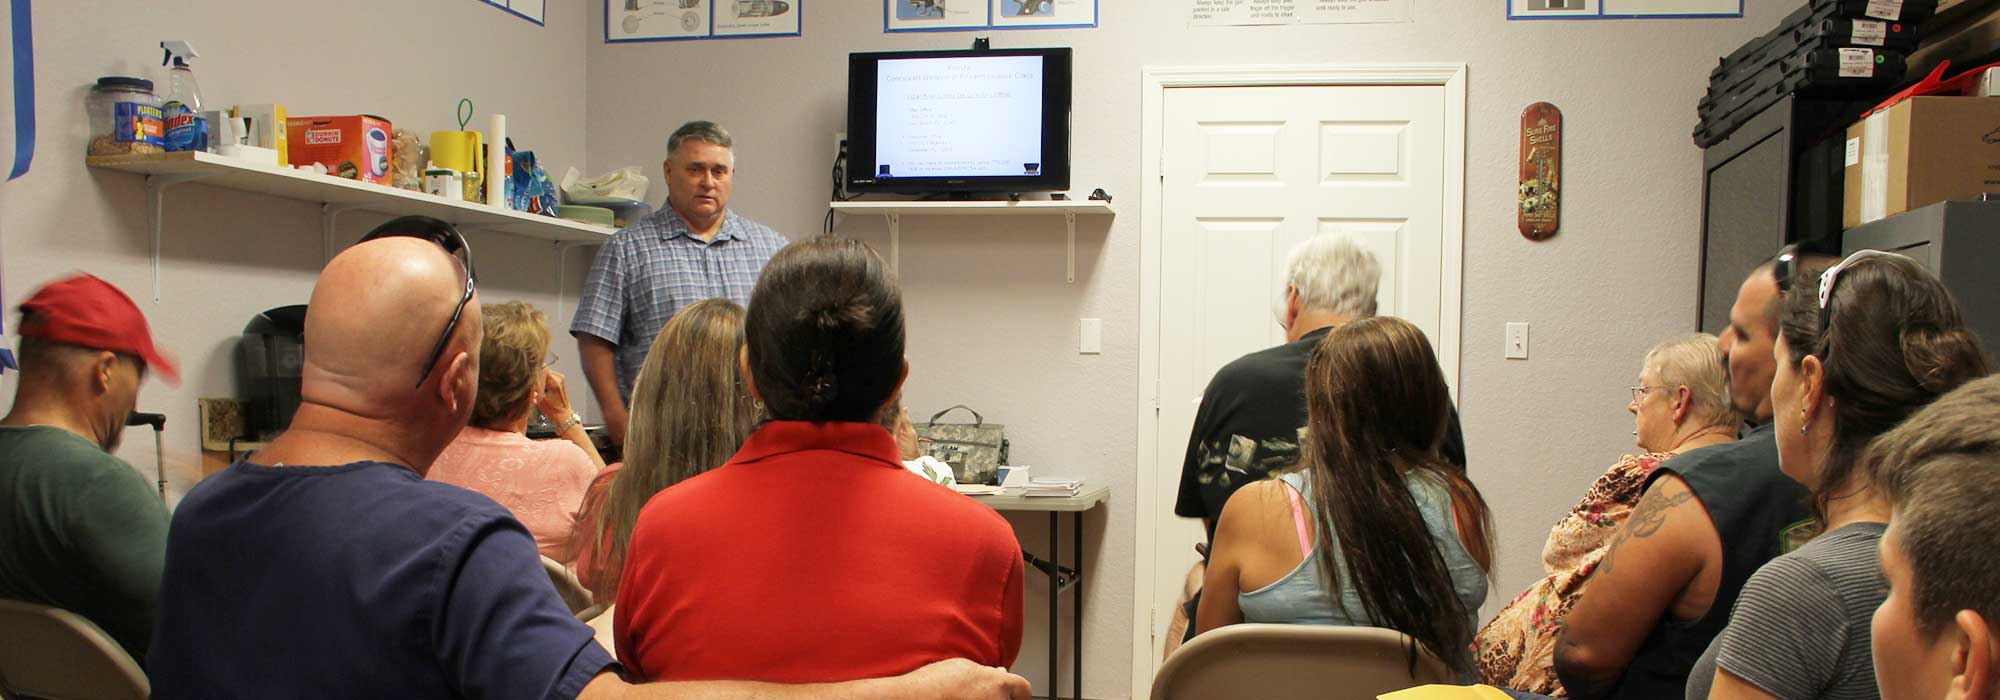 Straight Shooter of Palm Bay - We Offer Concealed Weapon Classes